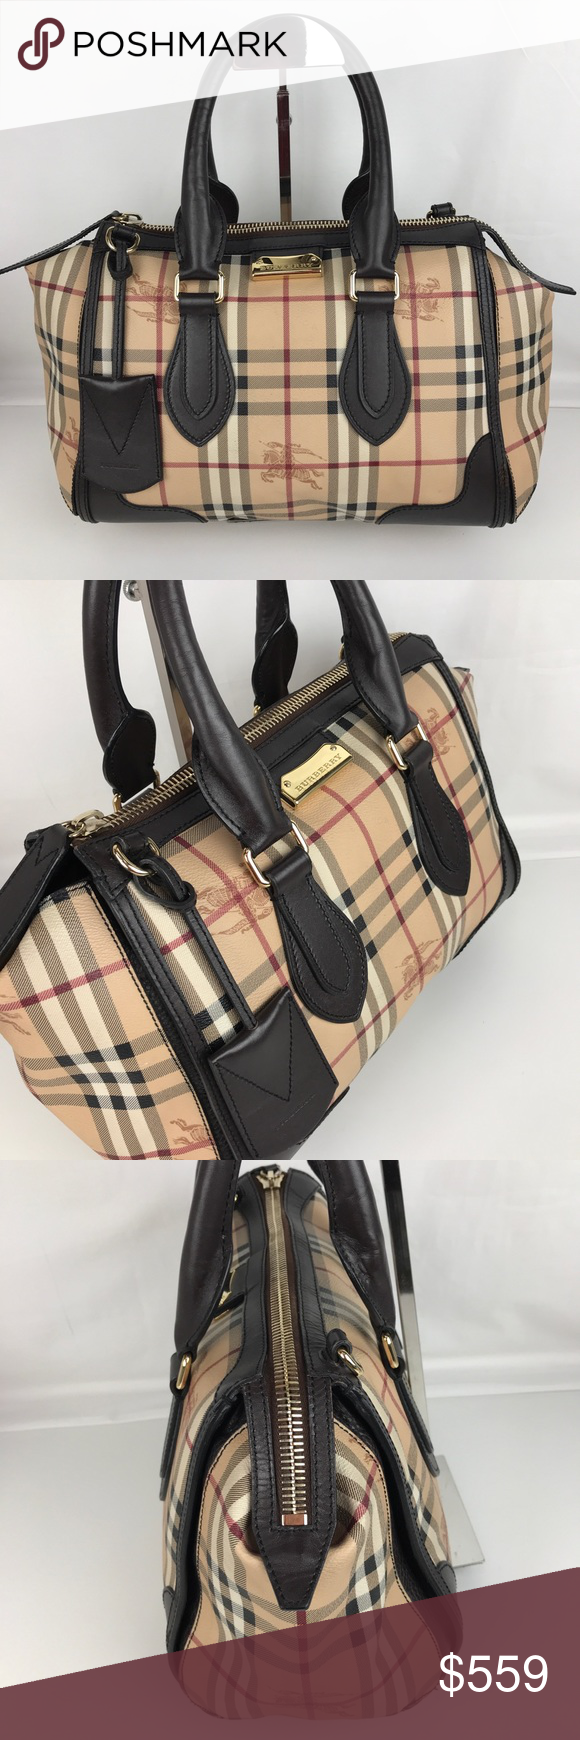 4b3380e4e139 Burberry Plaid Gladstone Chocolate Tote 3870759 Authentic Burberry Style  3870759. Gently used with tag and